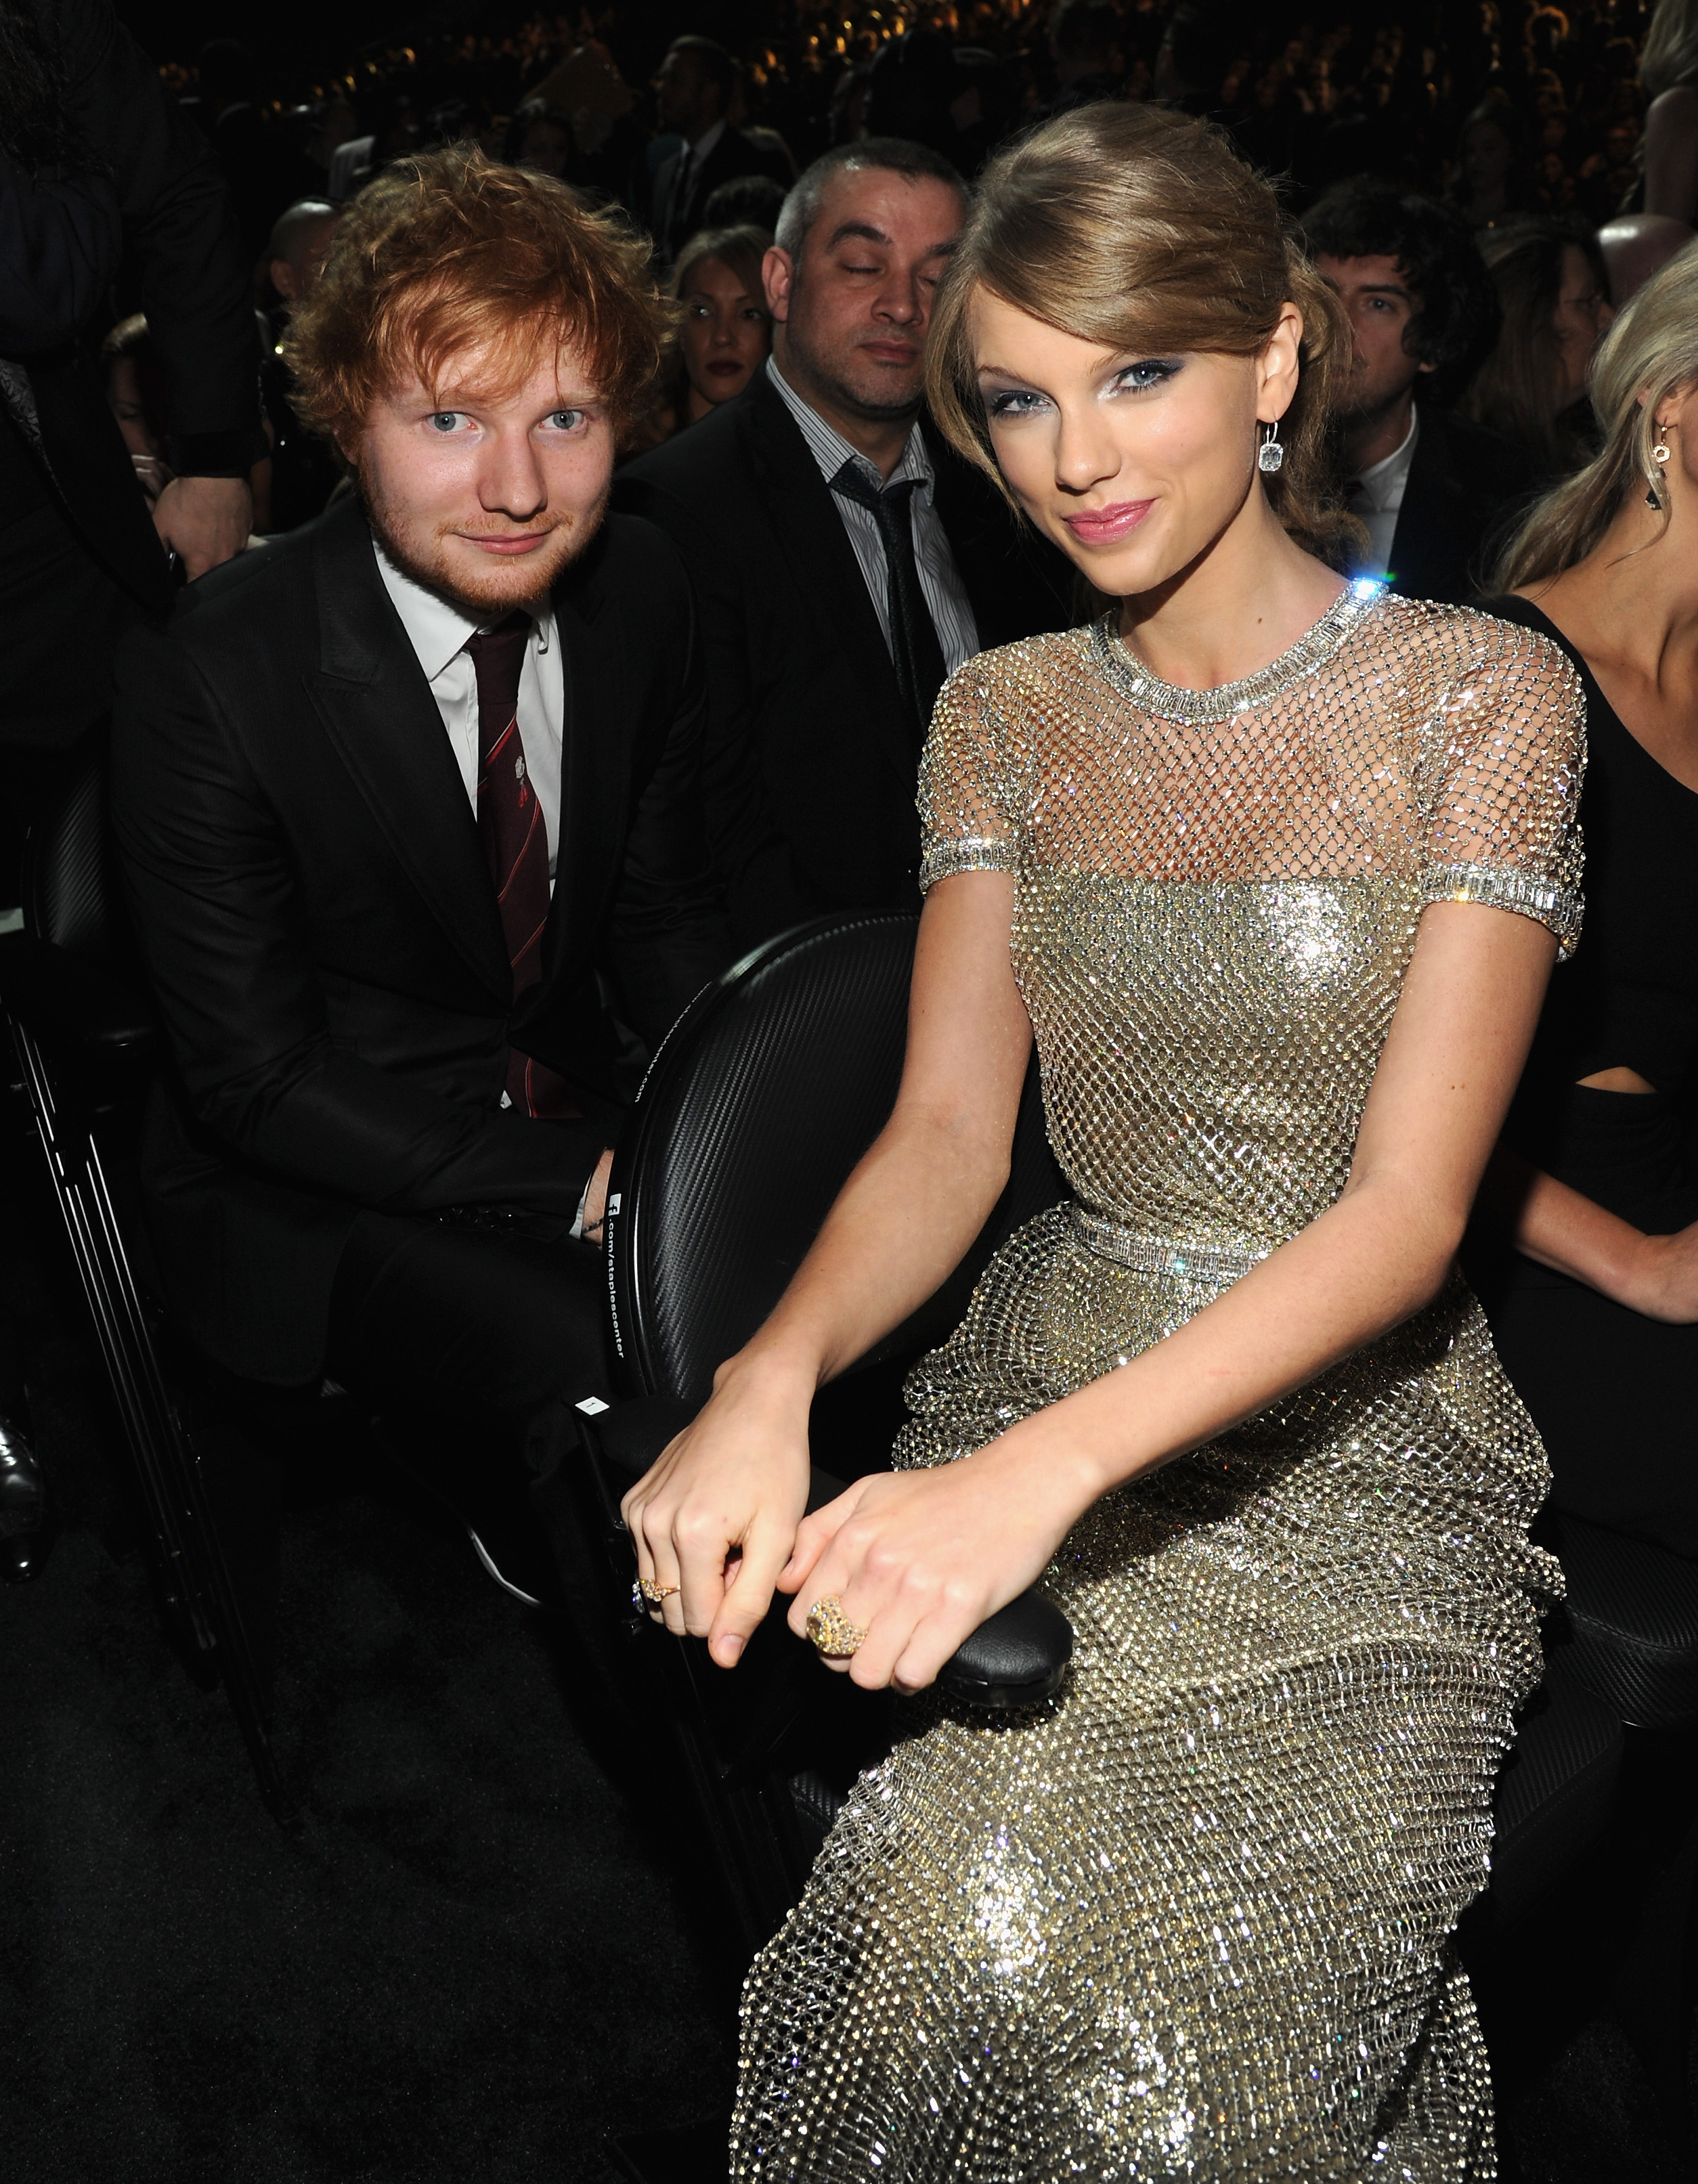 Ed Sheeran and Taylor Swift attend the 56th GRAMMY Awards at Staples Center on January 26, 2014 in Los Angeles, Ca.